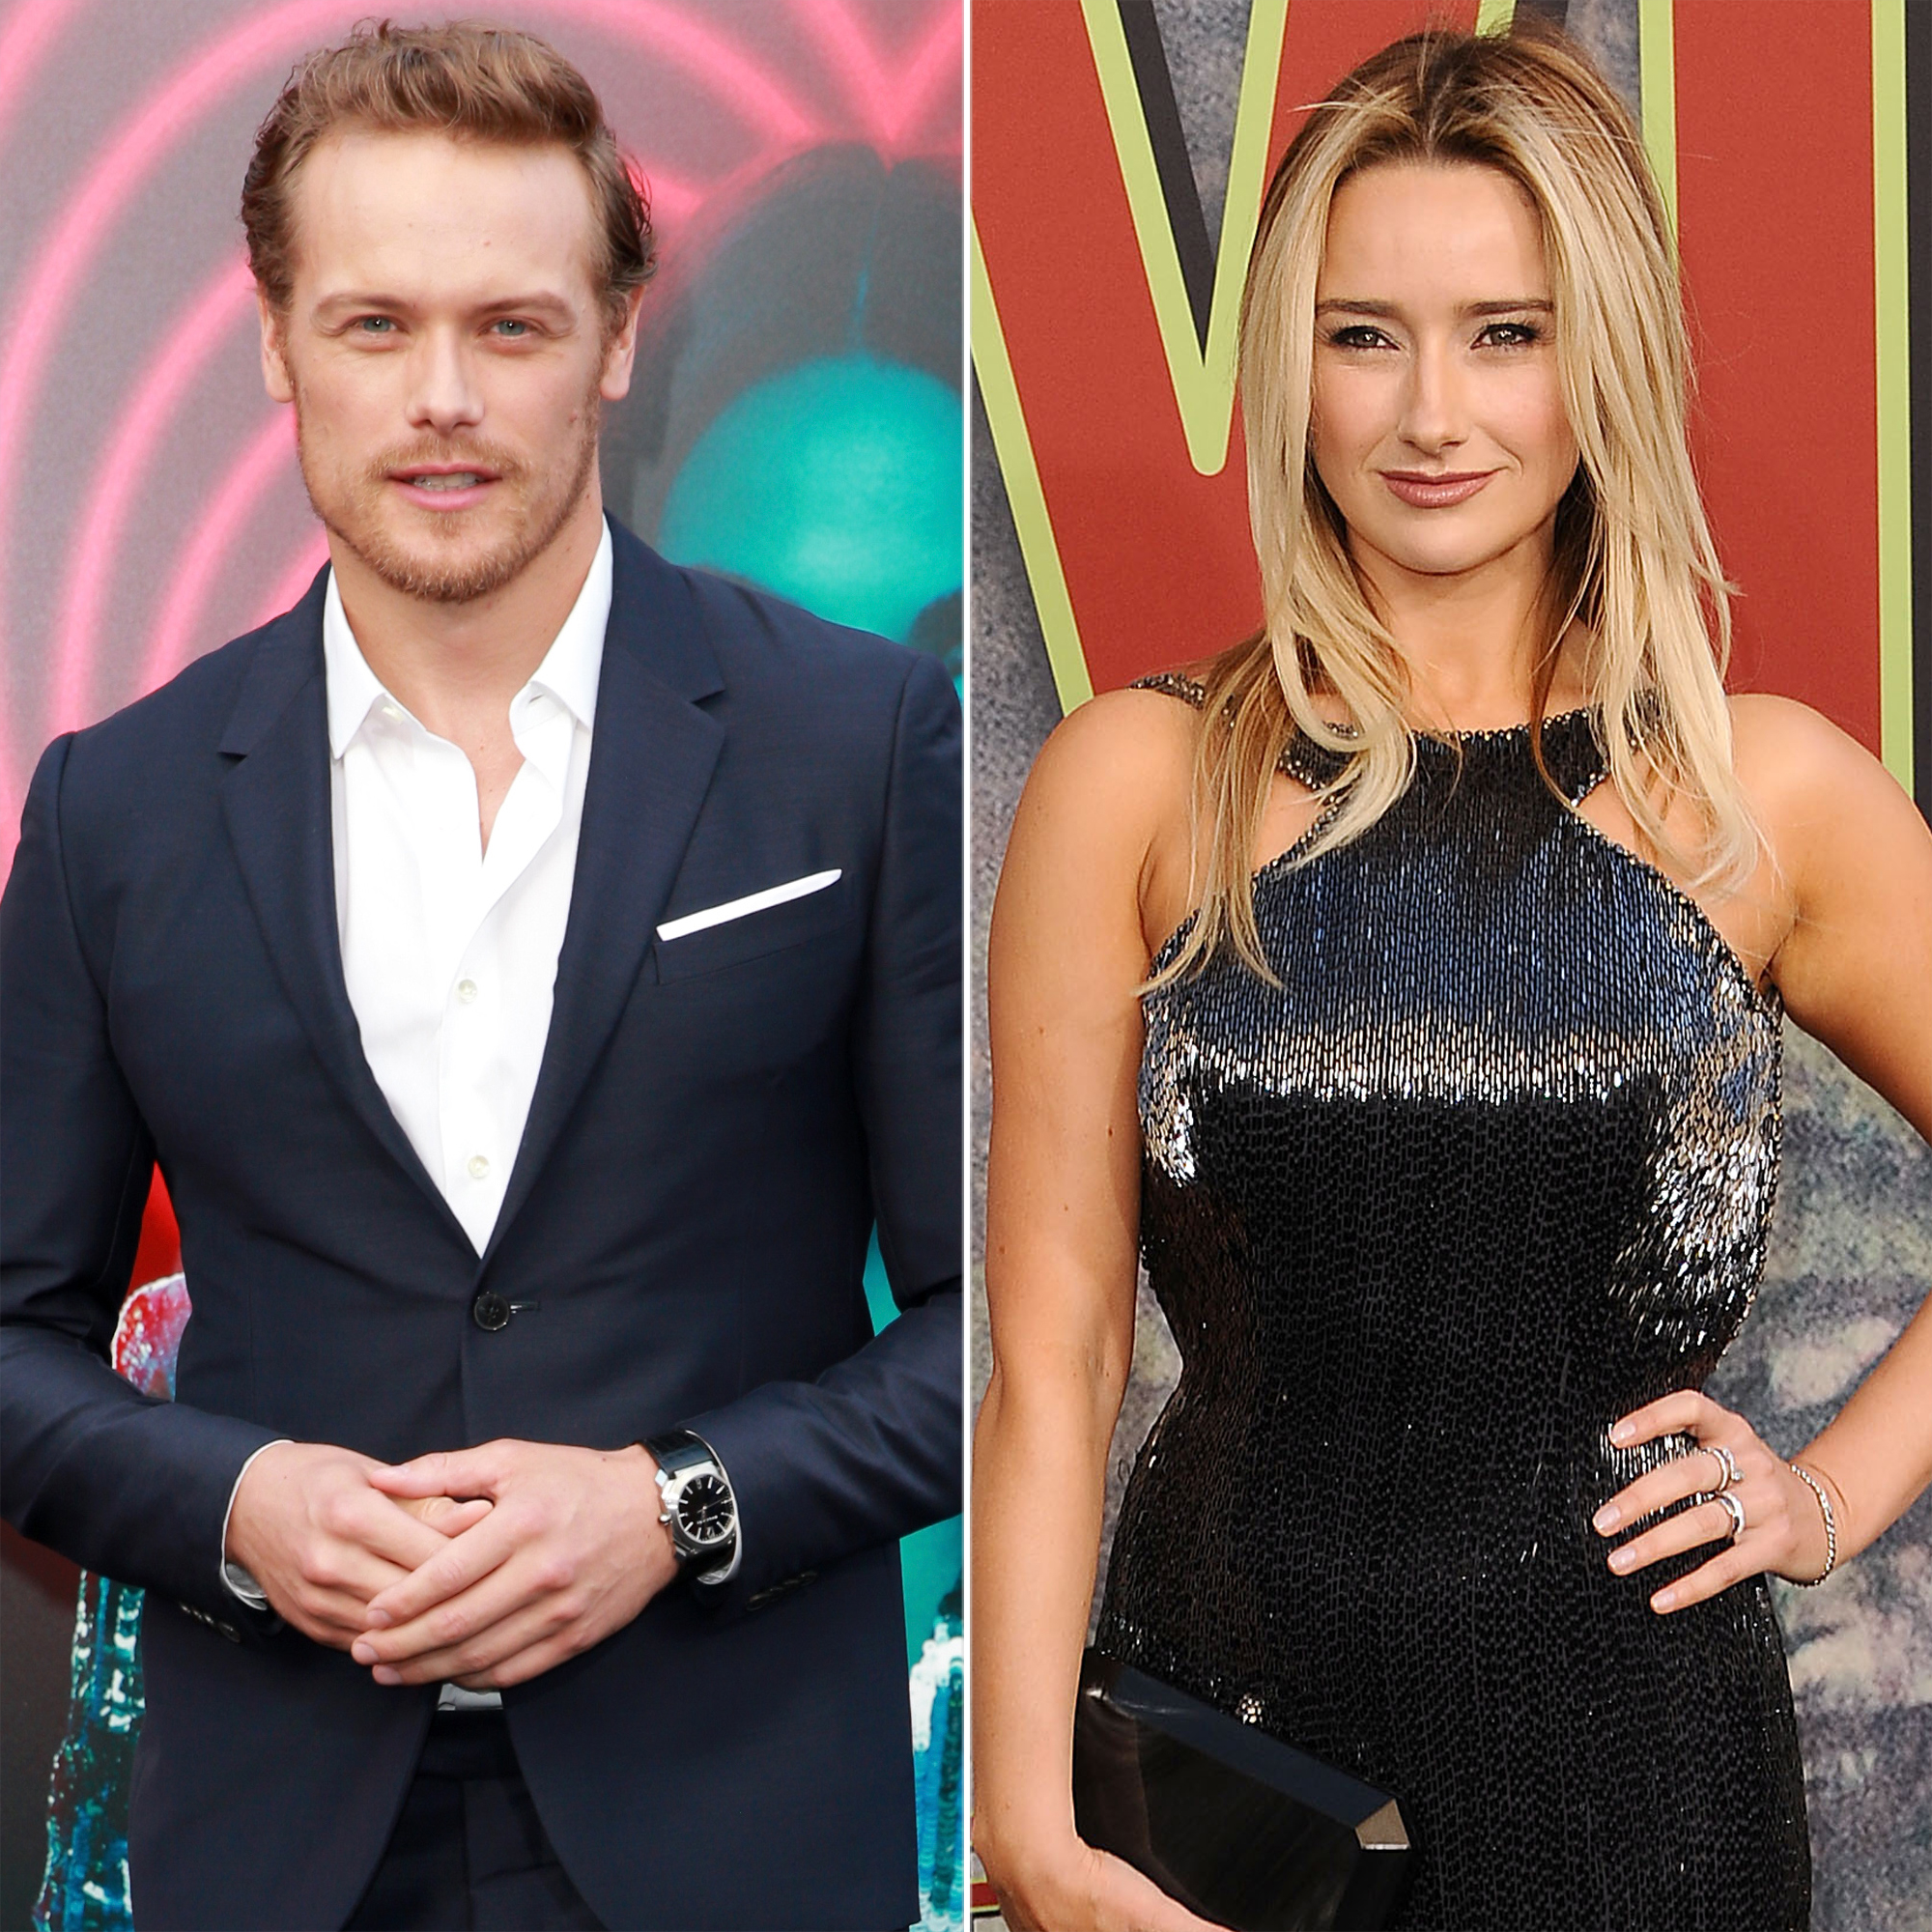 Outlander S Sam Heughan Is Dating Actress Amy Shiels Amy shiels is an irish actress who appeared as candie in twin peaks (2017). sam heughan is dating actress amy shiels